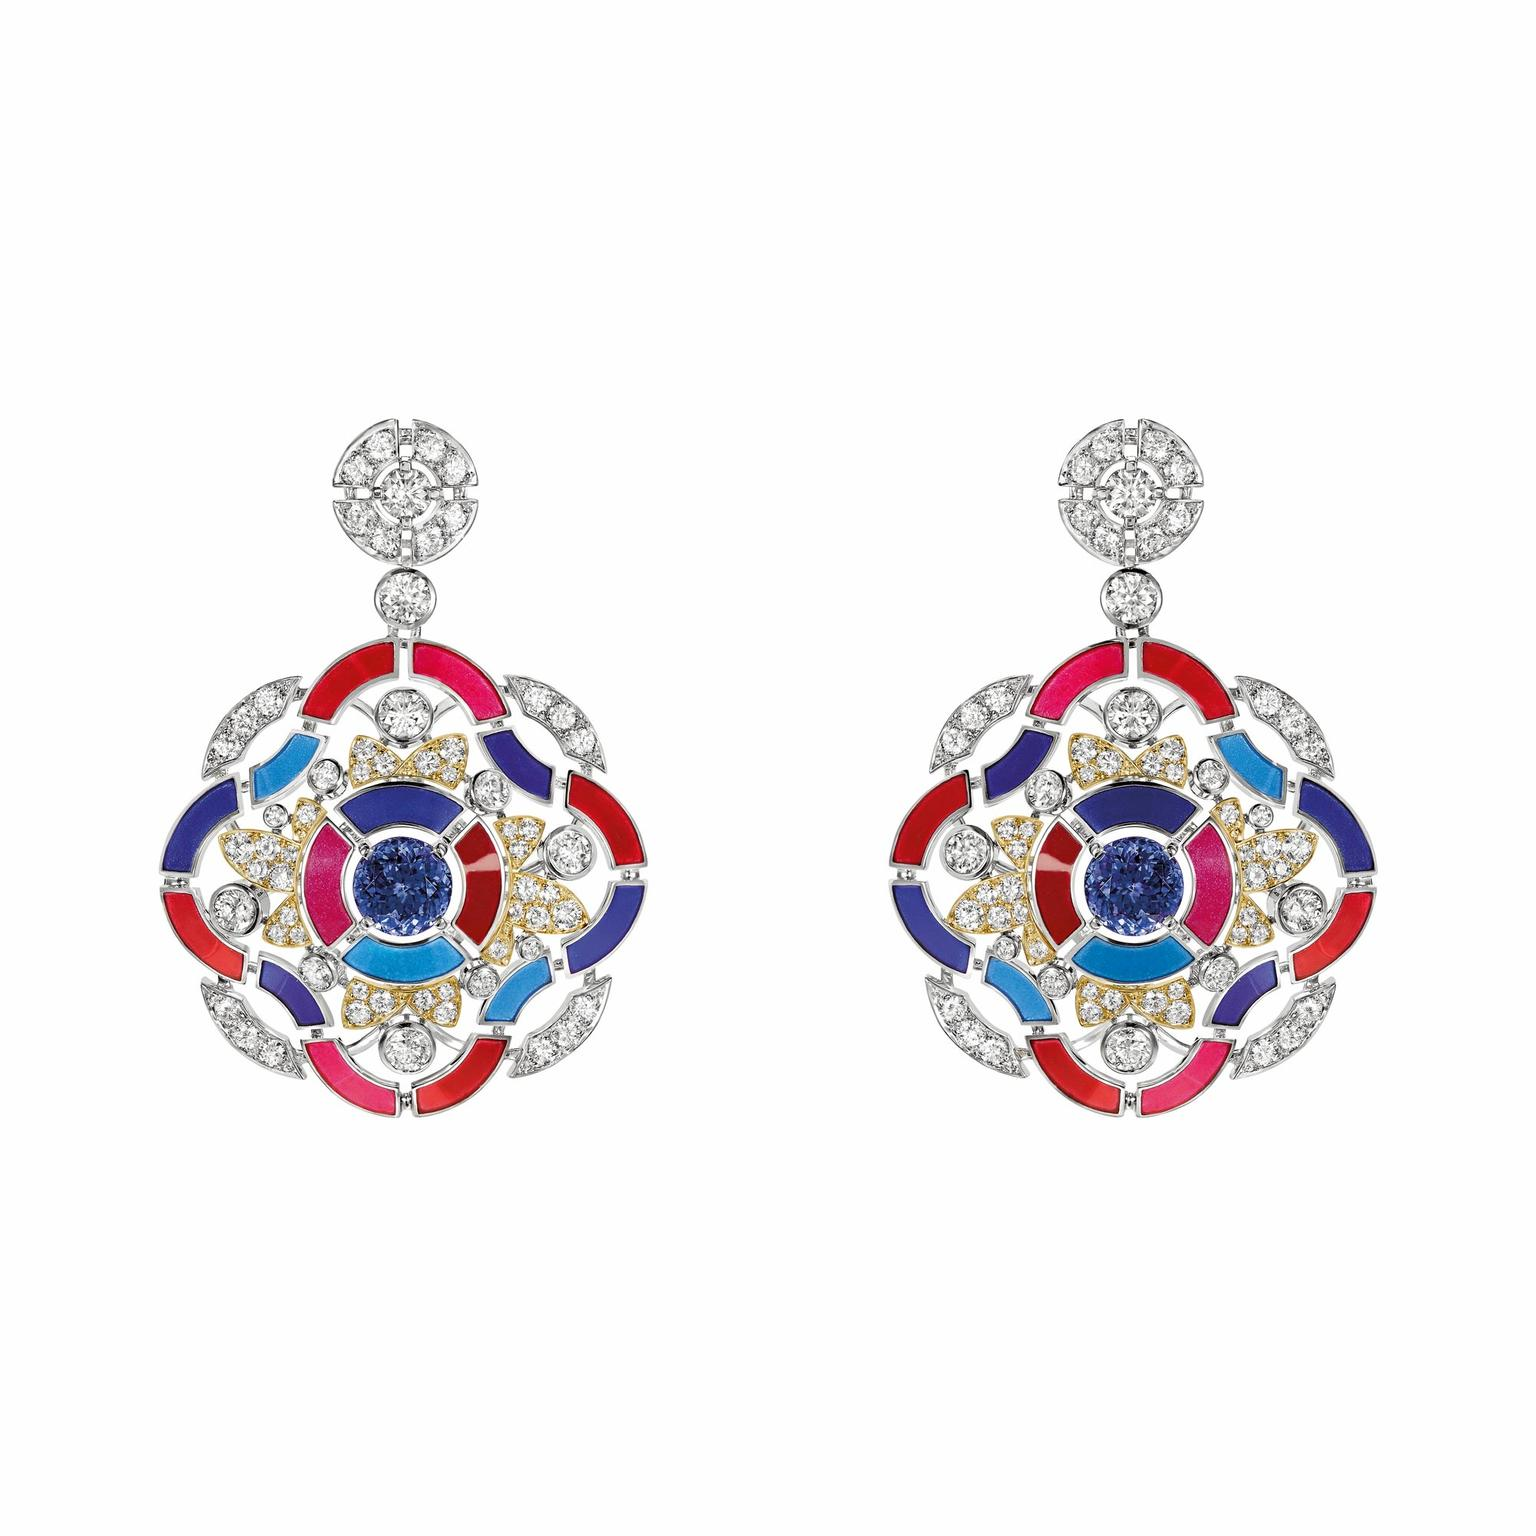 Chanel Talisman collection earrings